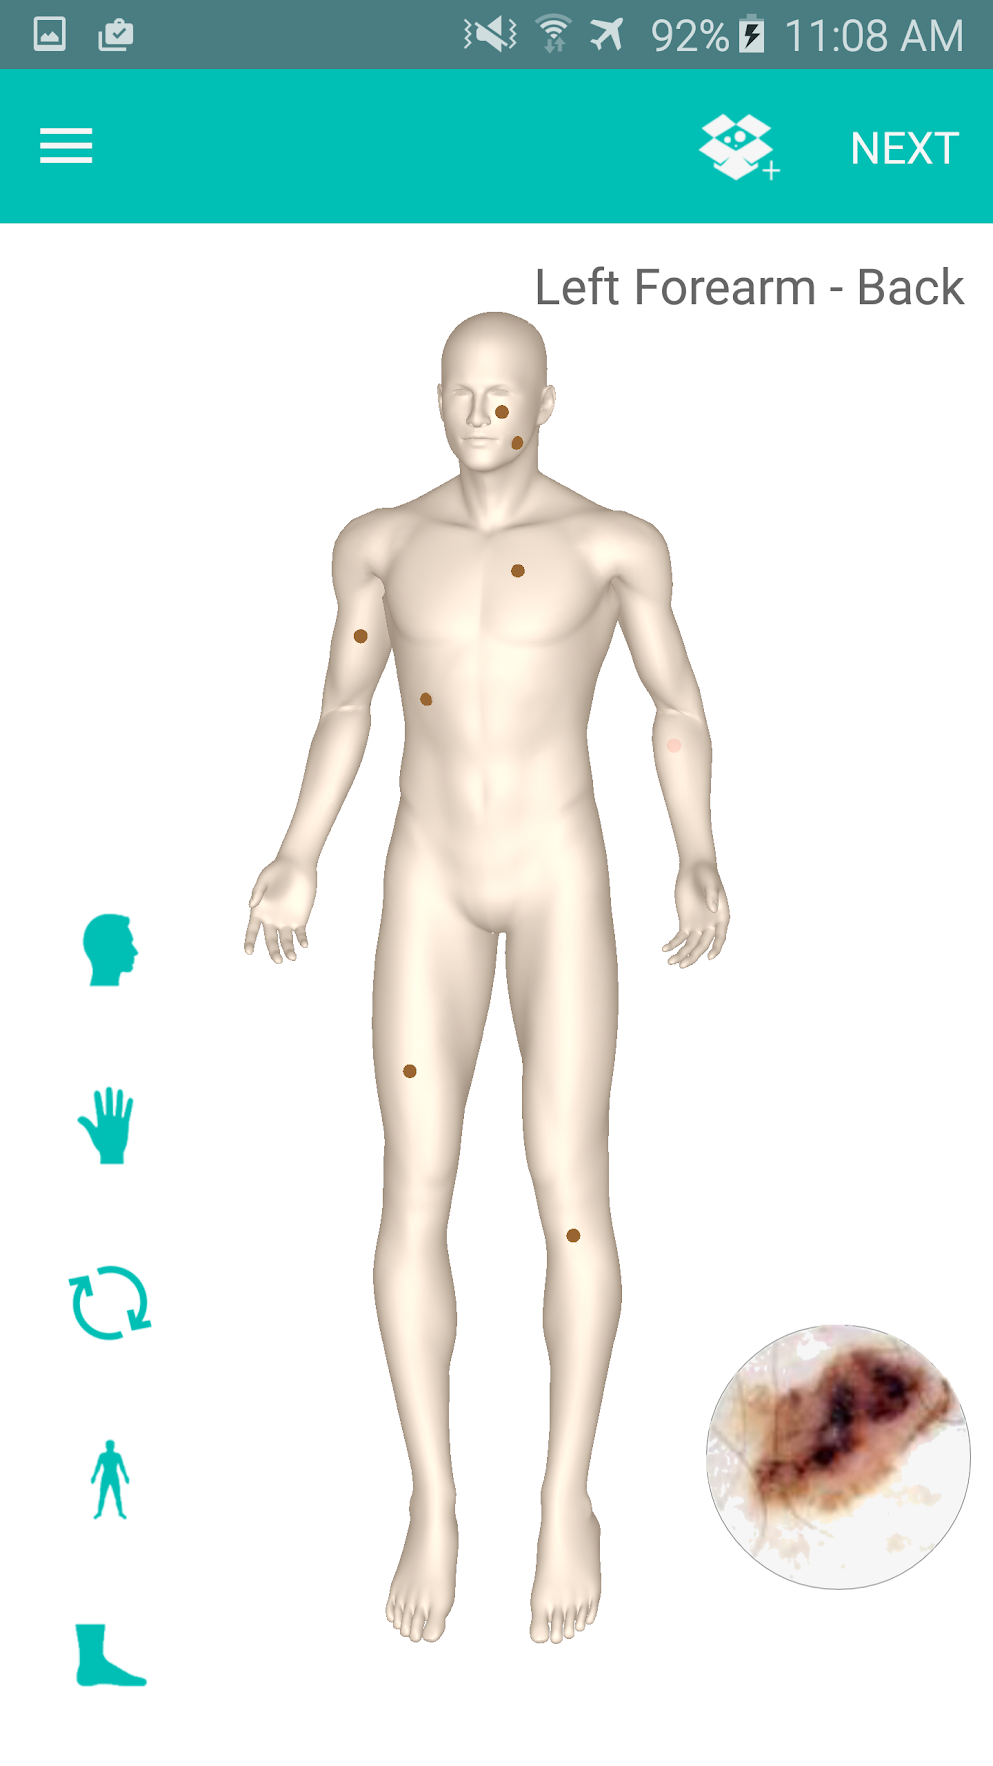 Add, locate, and edit a patient's spot profile with ease using the patient's personal 3D Body Map.